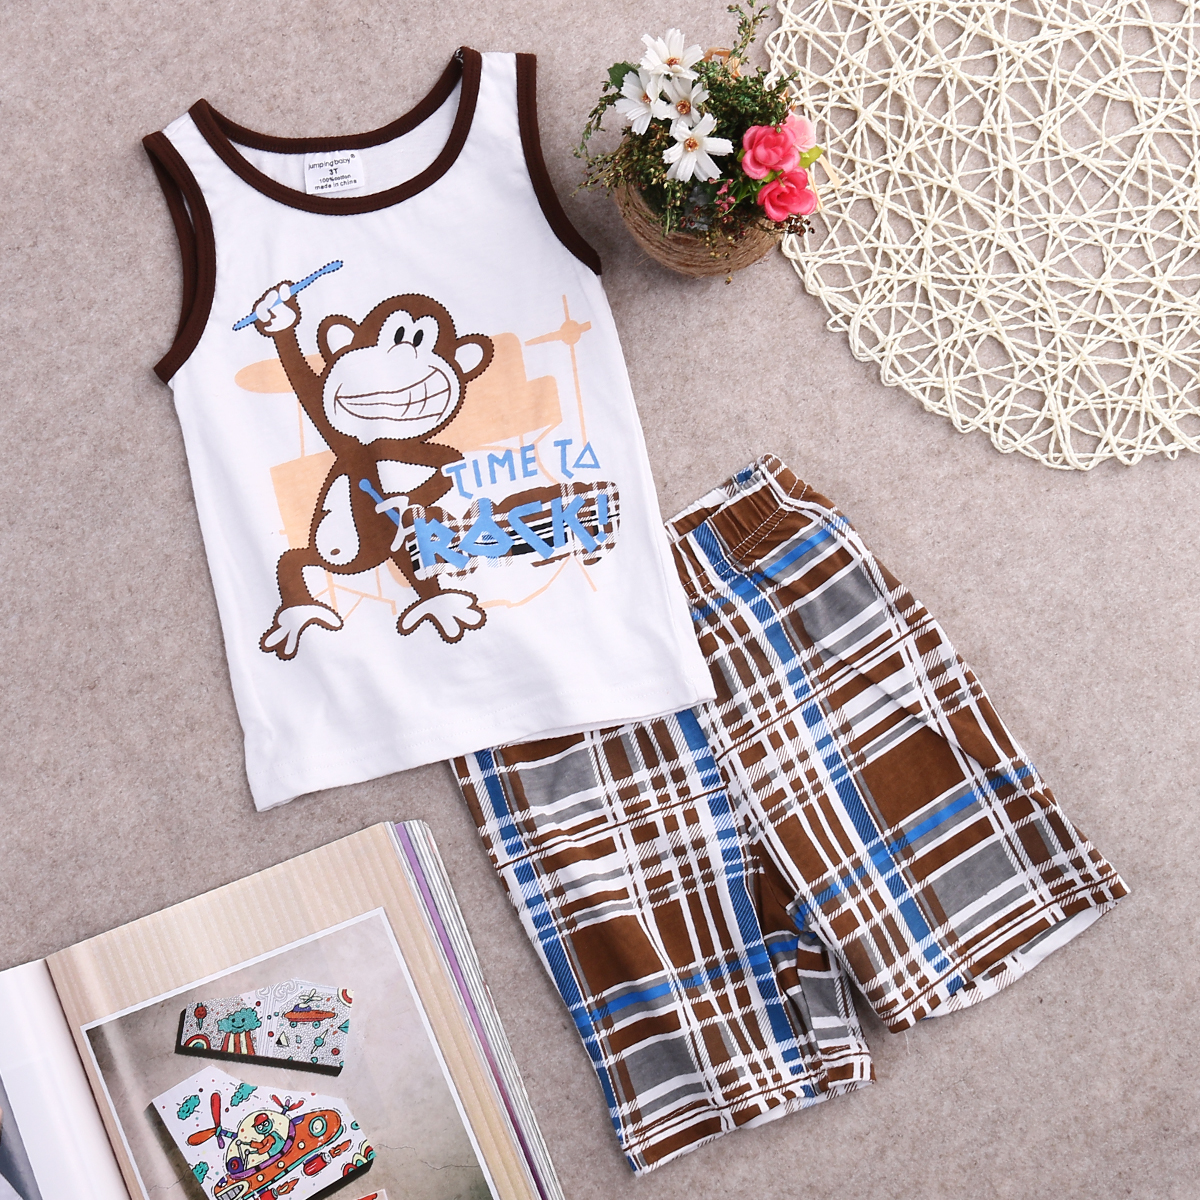 8830f2dff Toddler Kids Baby Boys Summer Outfits T-shirt Tank Tops+Pants 2pcs ...